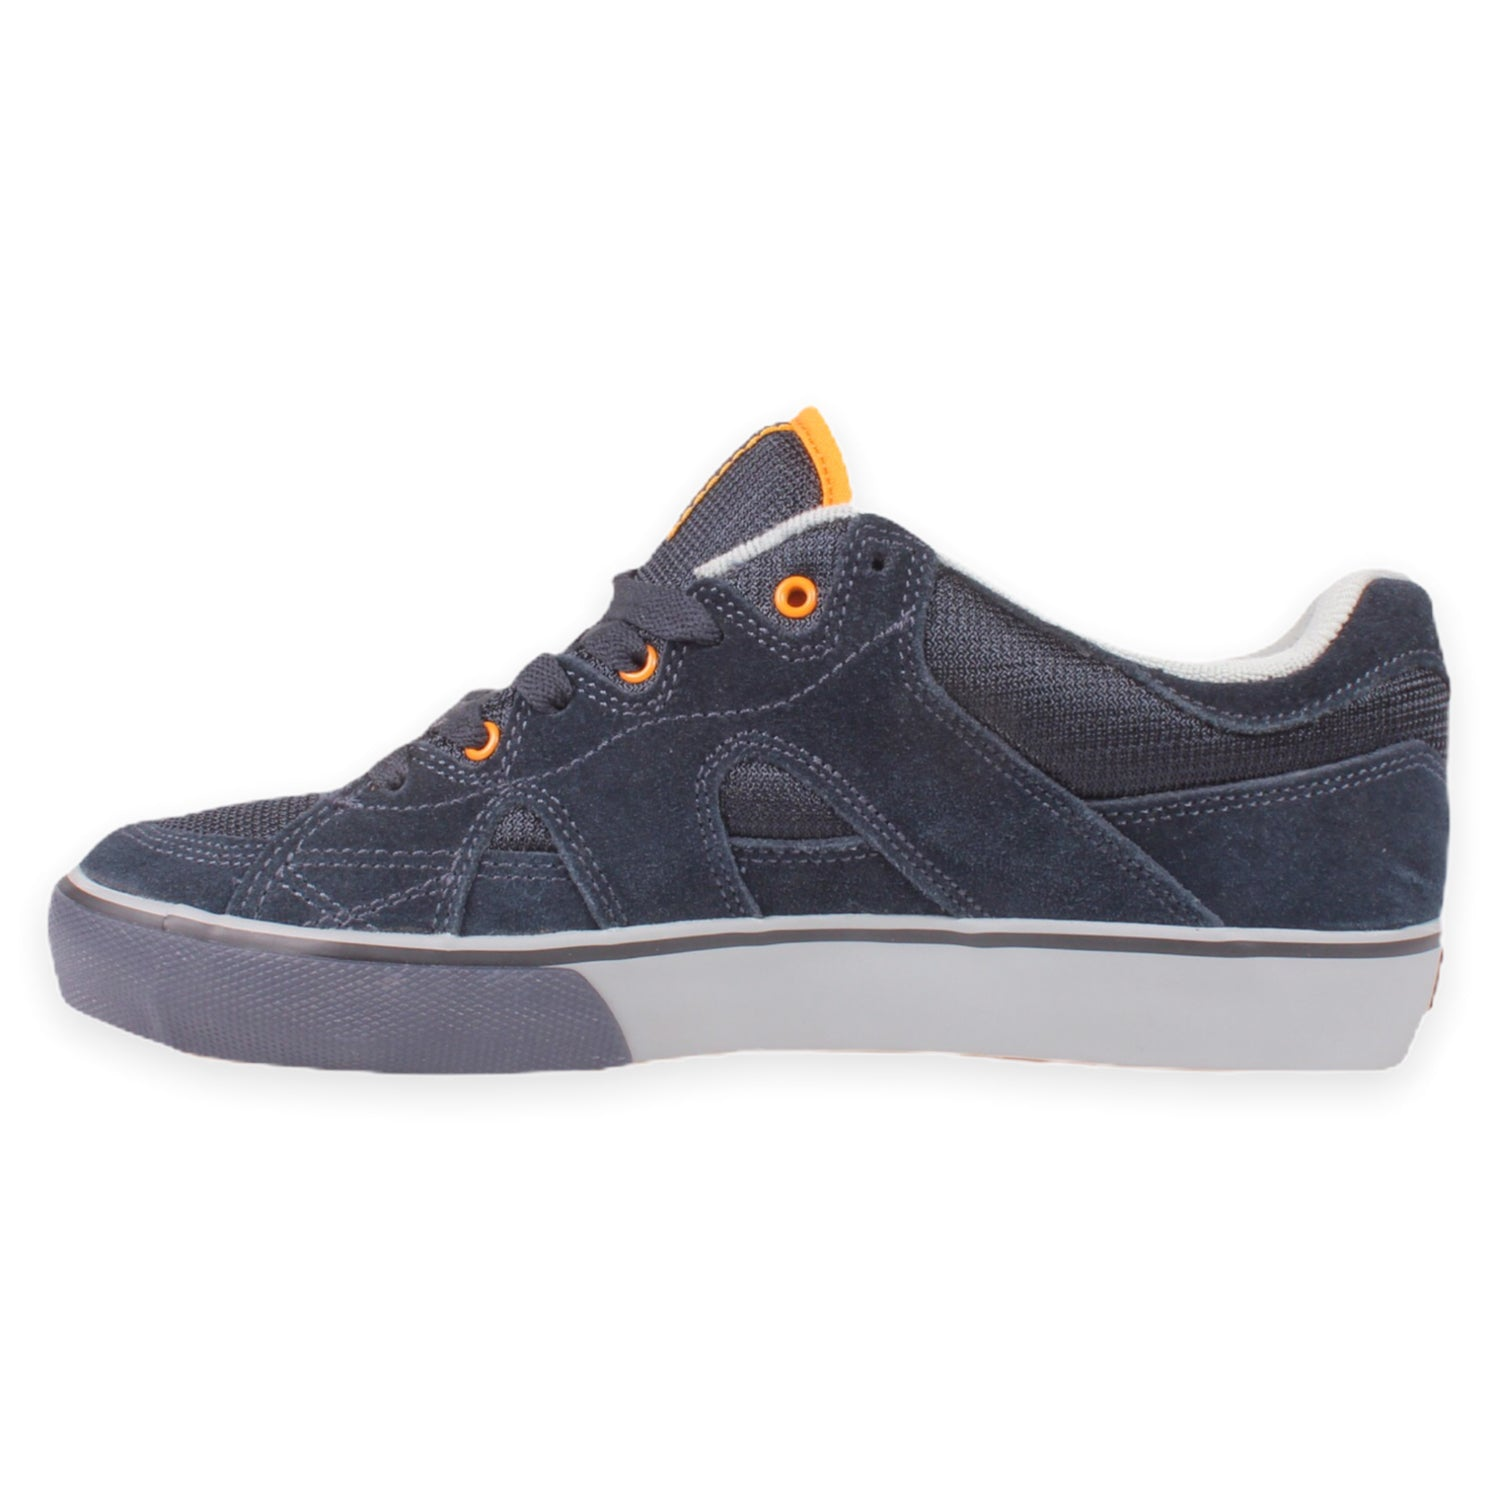 Overripe eS ES-One Navy/Grey/Orange (2009)